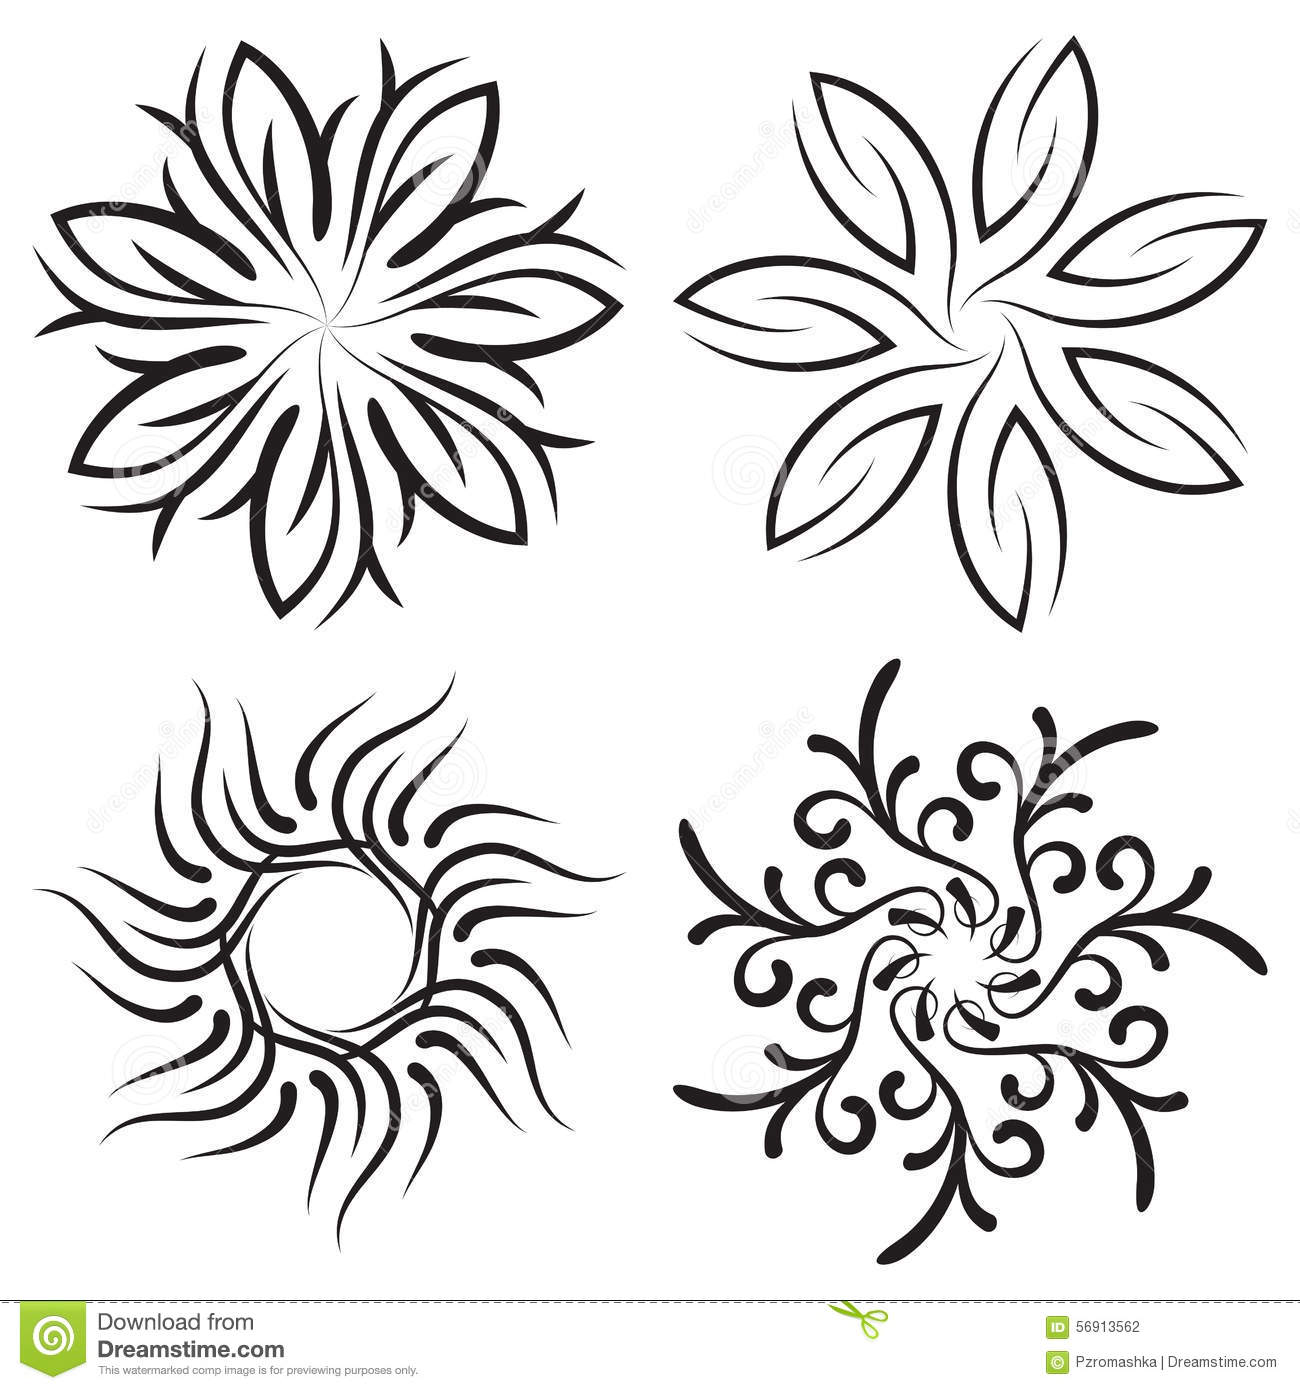 pics for gt symmetrical flower designs